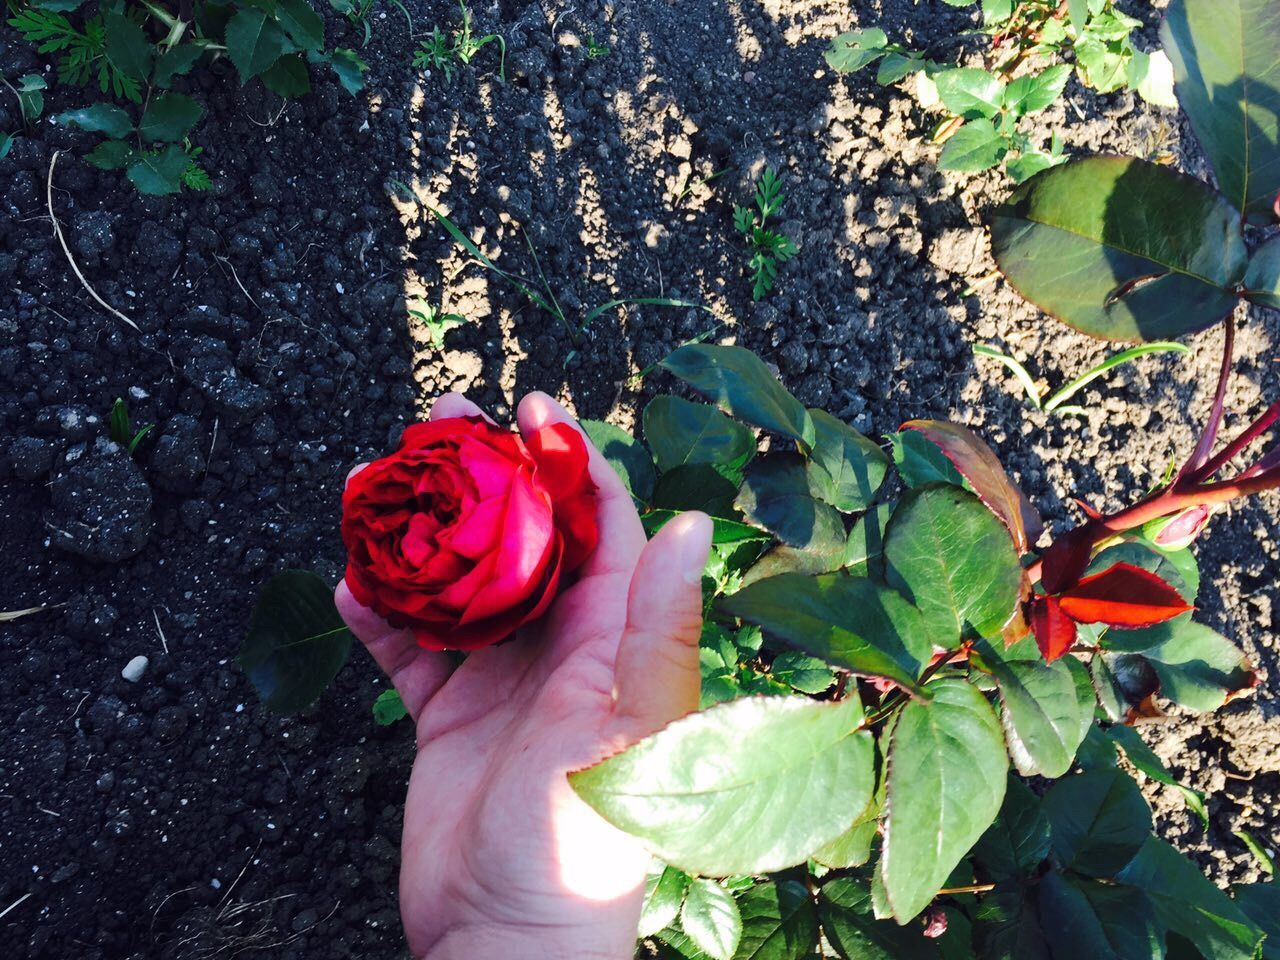 Rose - Flower Red Flower Outdoors Day Leaf Petal Beauty In Nature High Angle View Nature Plant Growth Fragility Rosé Hand Freshness One Person Real People Close-up Human Body Part Human Hand Live For The Story Place Of Heart